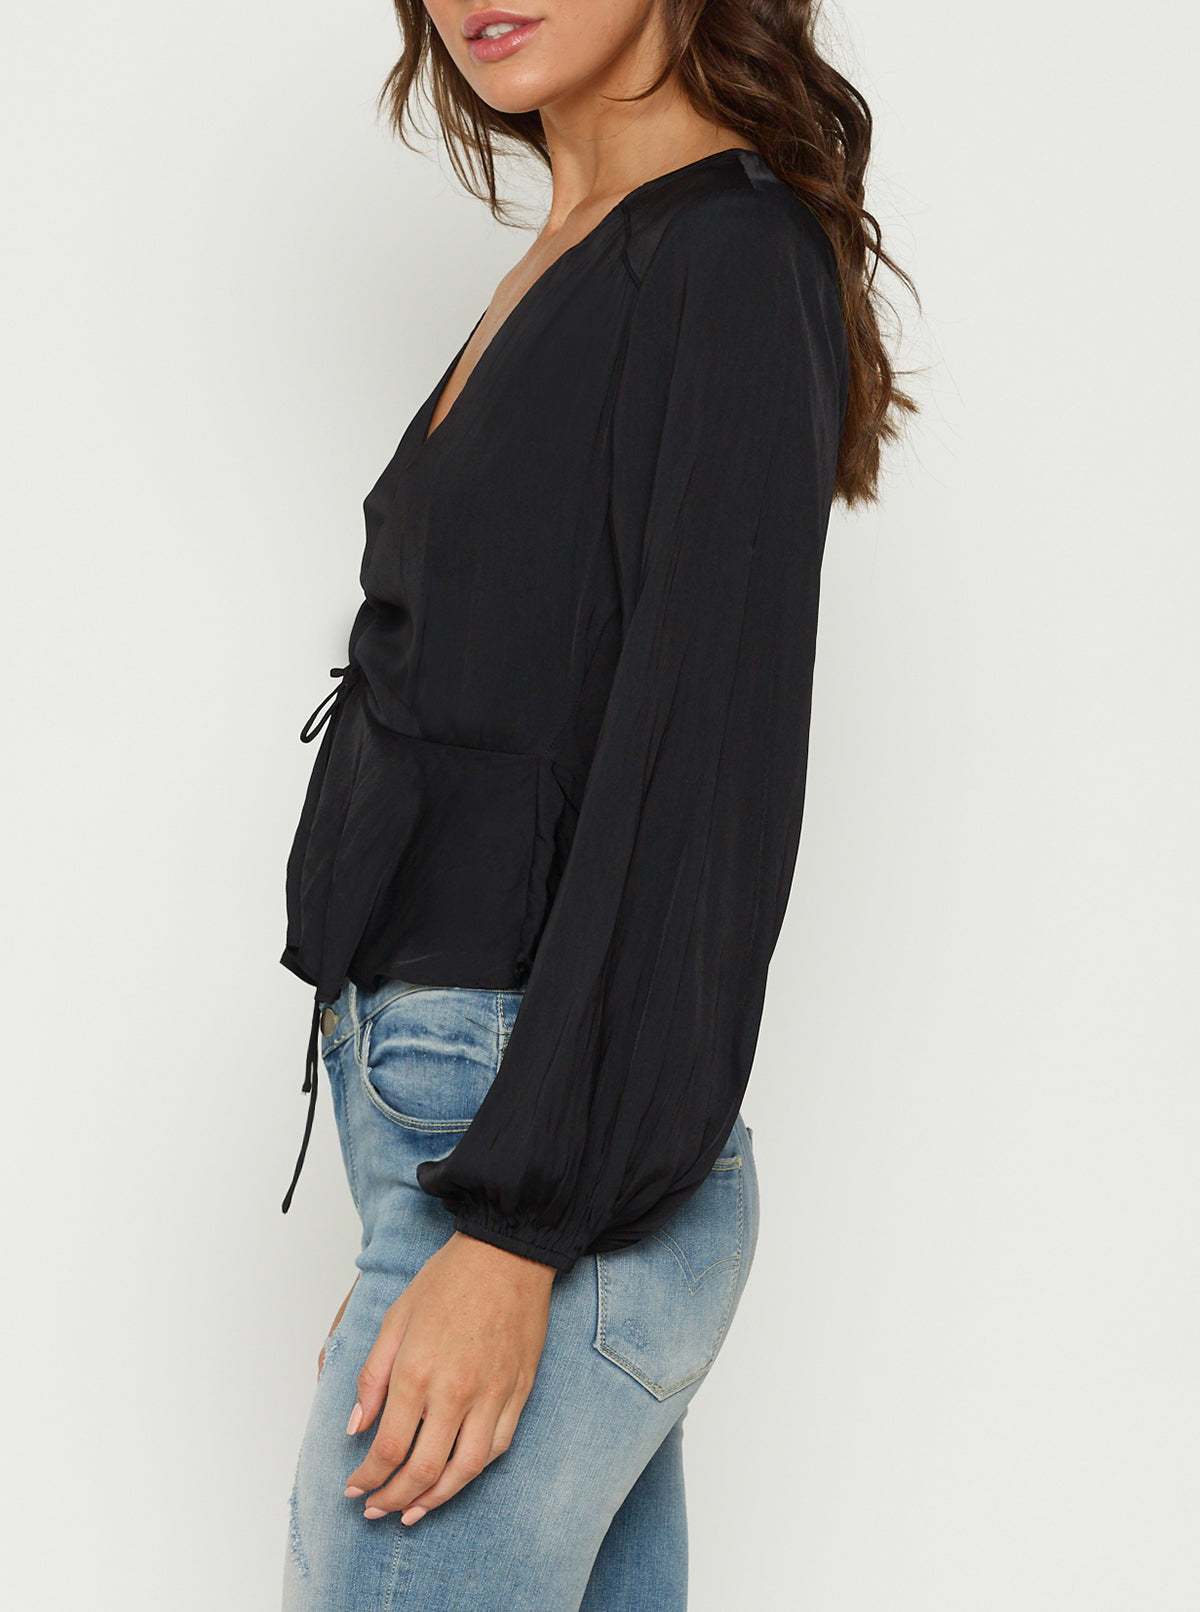 Look Twice Cropped Blouse/Jacket